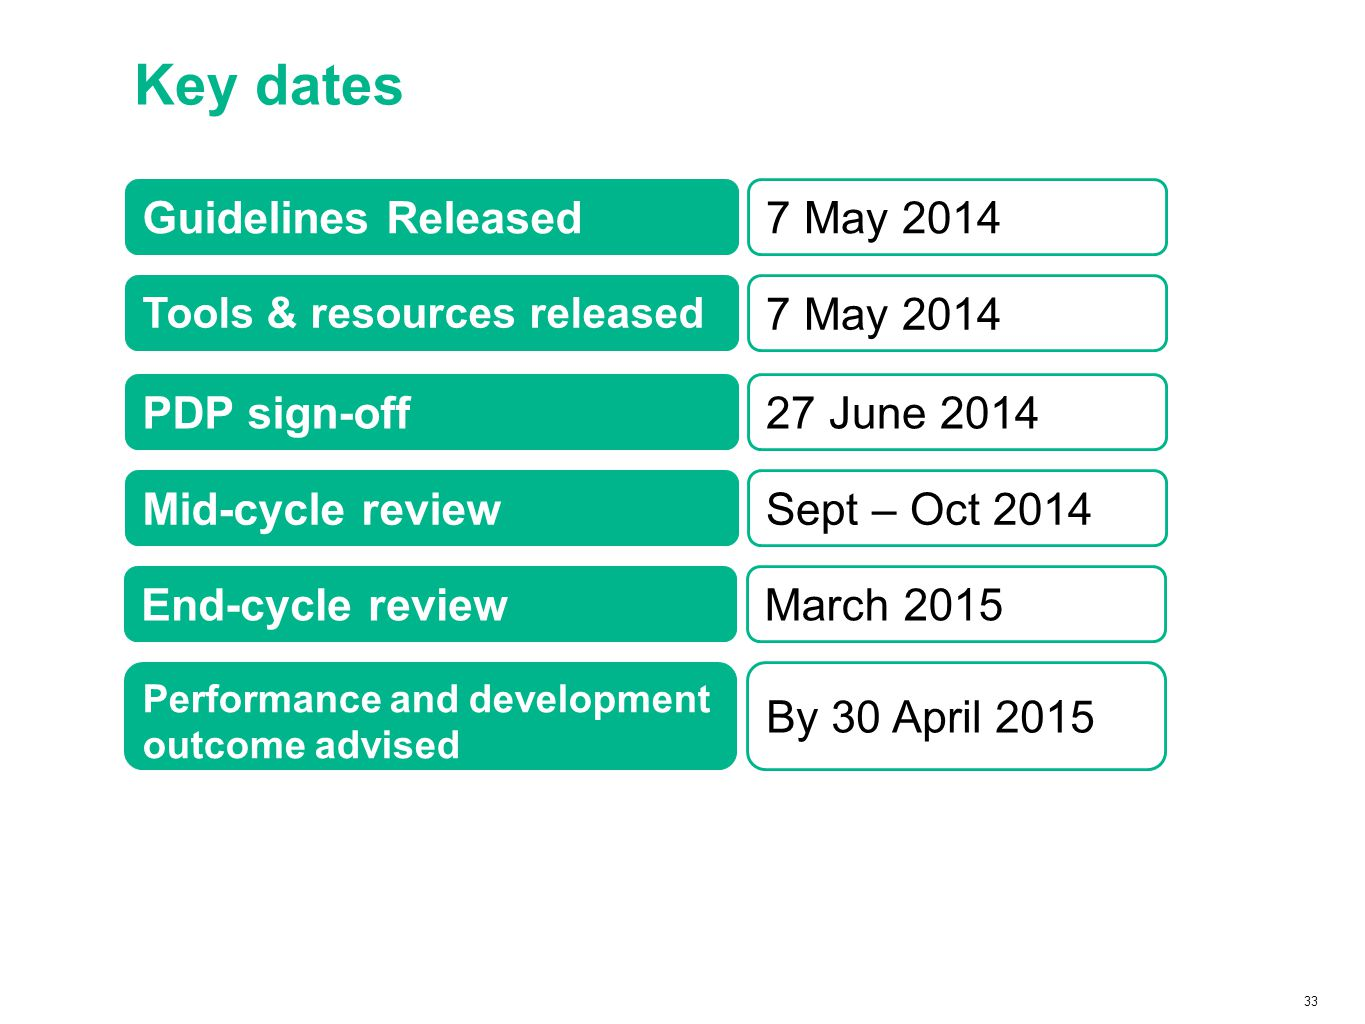 33 Key dates Guidelines Released Tools & resources released PDP sign-off Mid-cycle review End-cycle review Performance and development outcome advised 7 May 2014 27 June 2014 Sept – Oct 2014 March 2015 By 30 April 2015